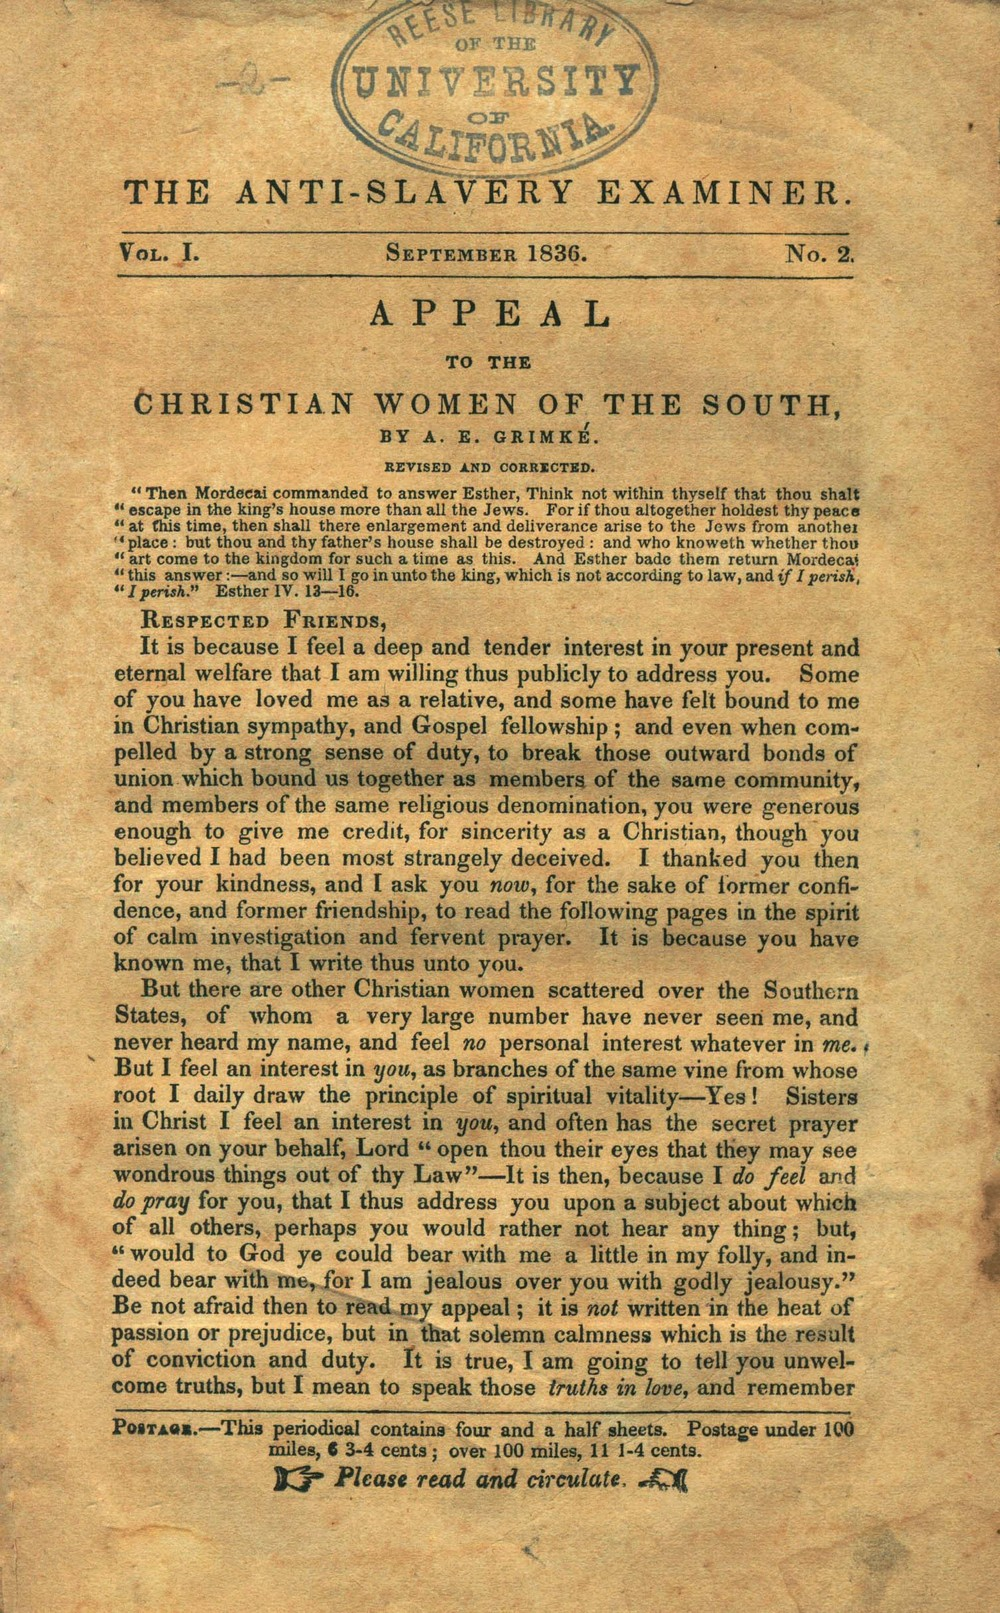 abolitionist movement history of u s w s suffrage angelina grimke appeal to the christian women of the south 1836